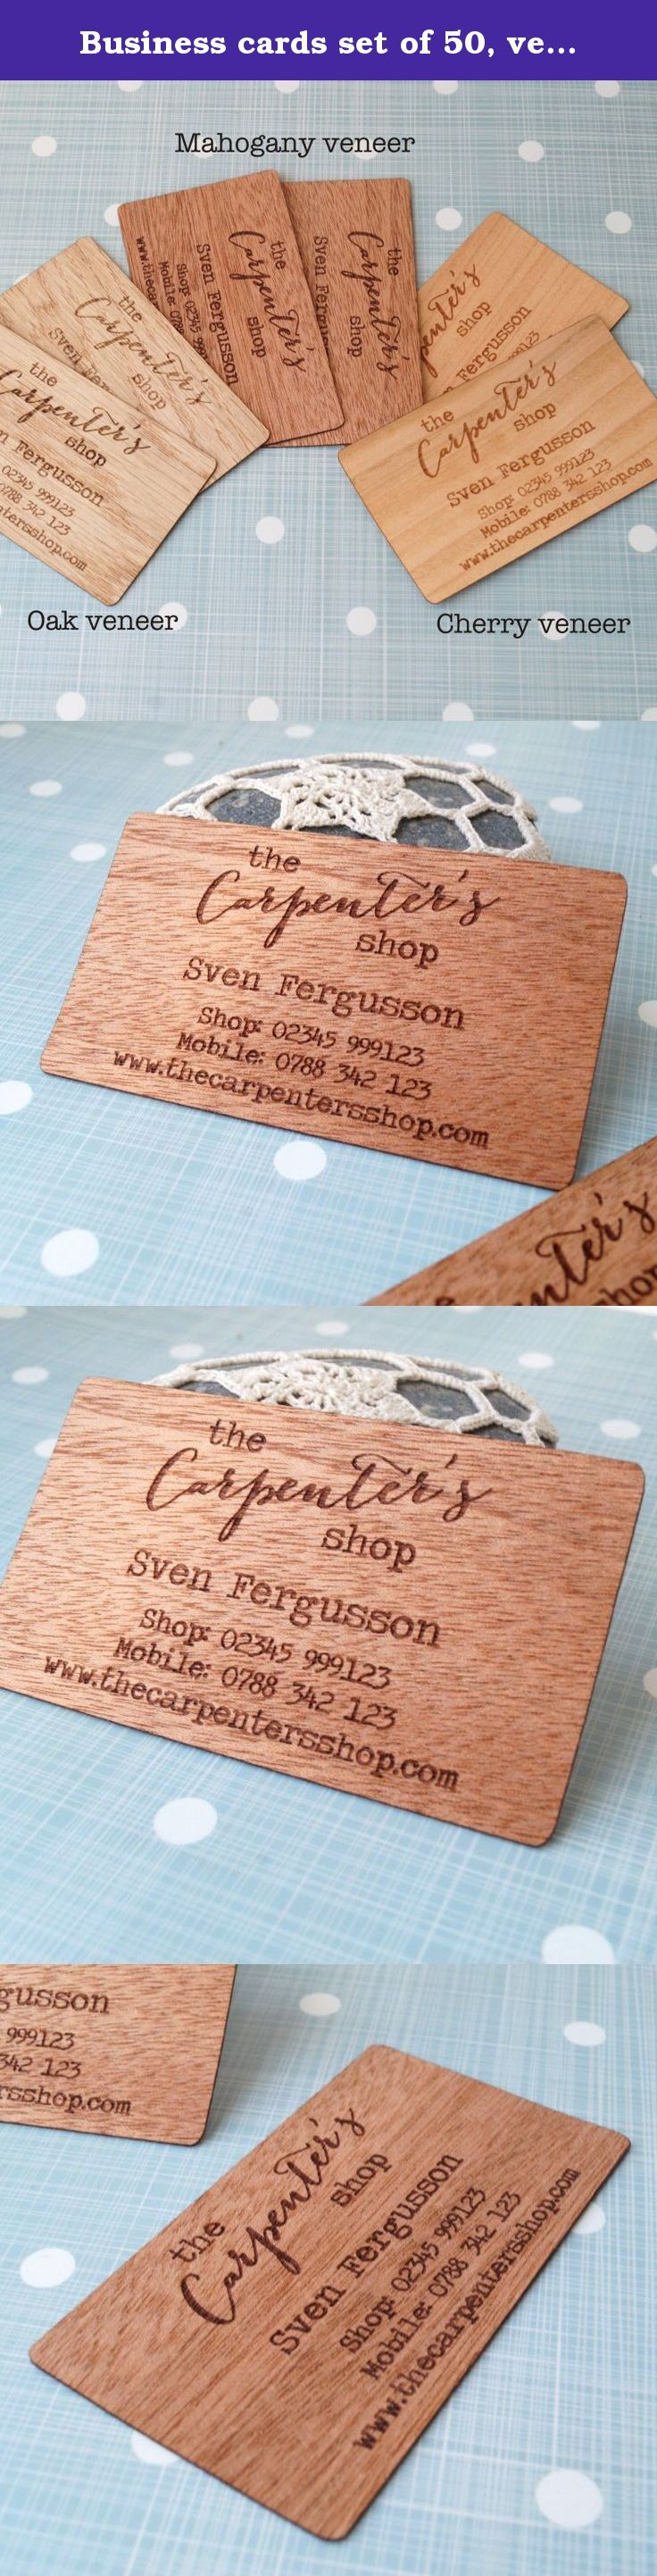 Veneer Business Cards Images - Free Business Cards